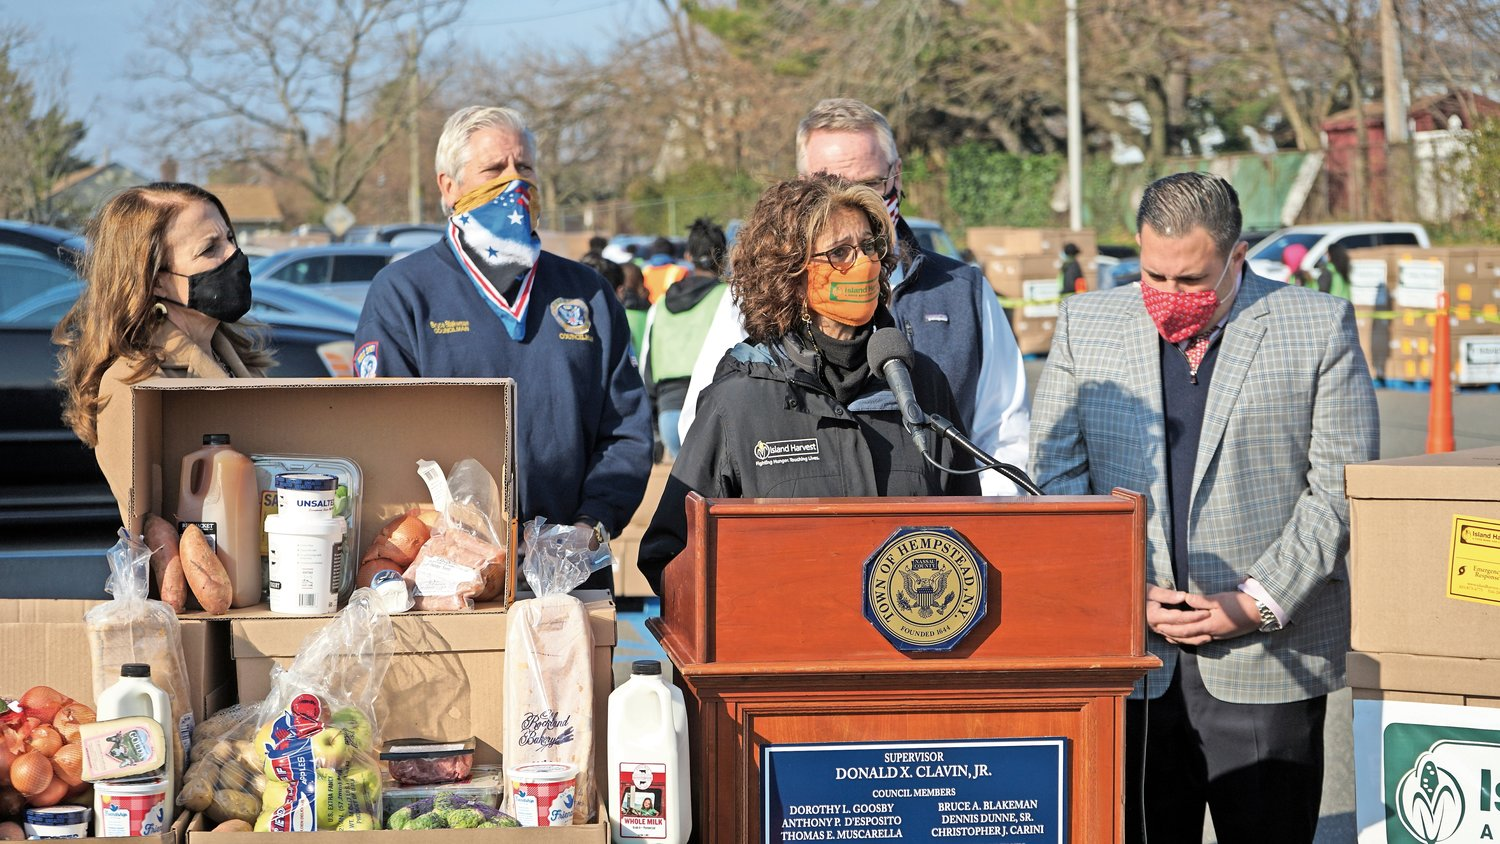 Island Harvest President and CEO Randi Shubin Dresner spoke about food insecurity with town officials at a food distribution event last Friday.